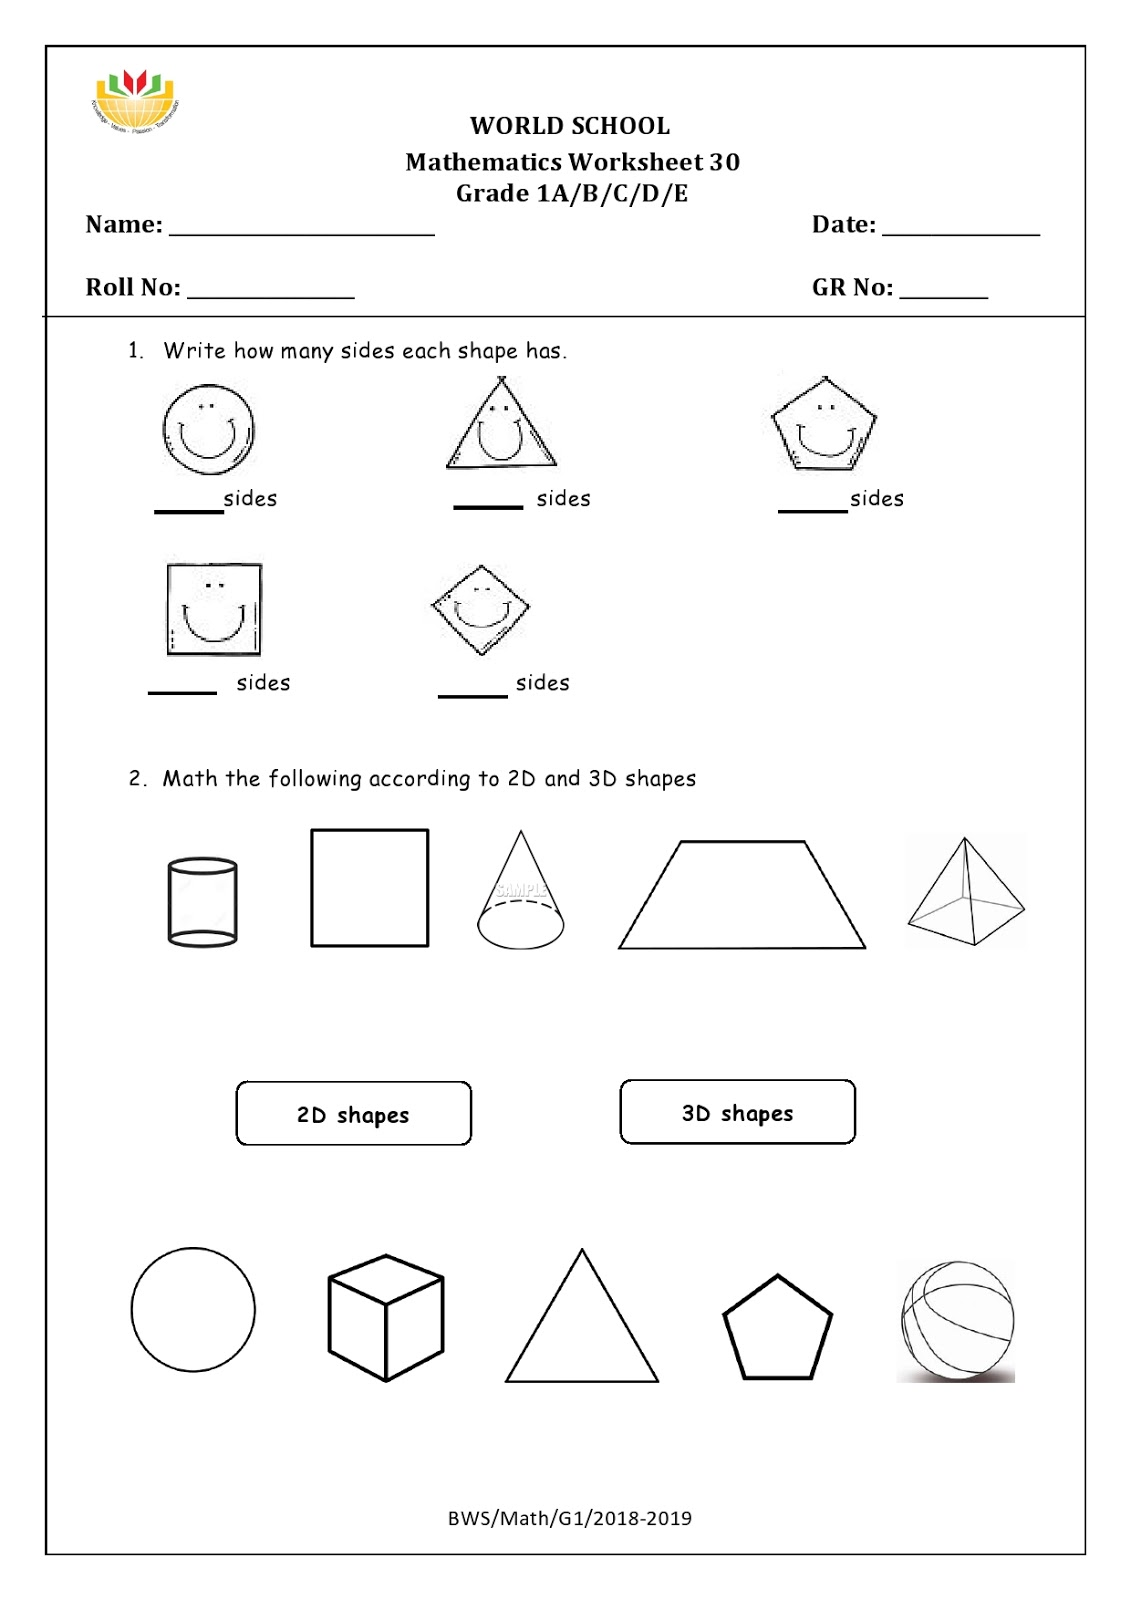 Birla World School Oman Homework For Grade 1 As On 23 04